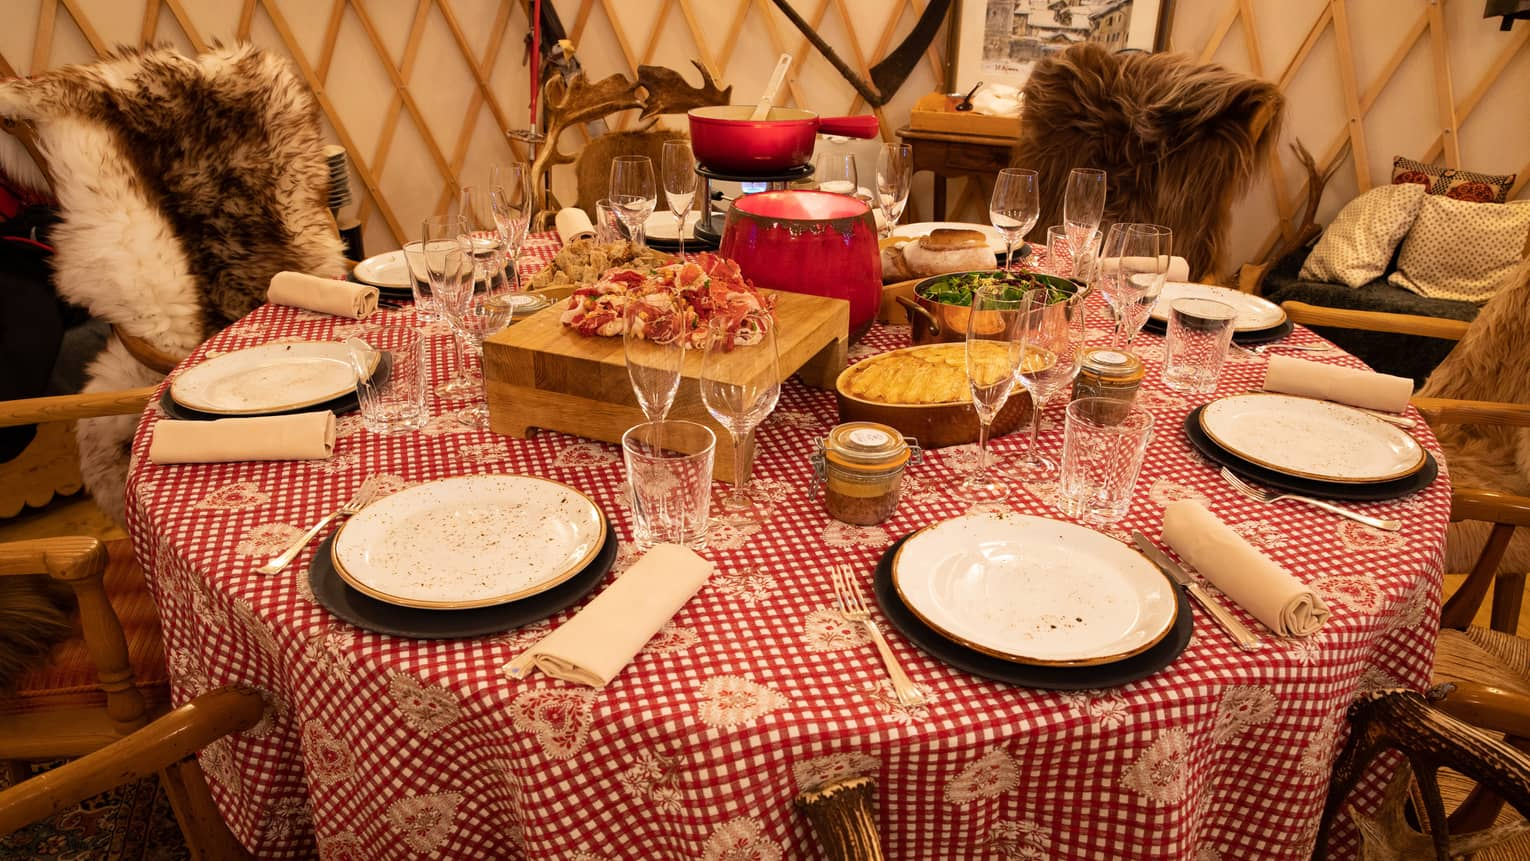 Round dining table with cured meats, clay pots, fur blankets over chairs in yurt